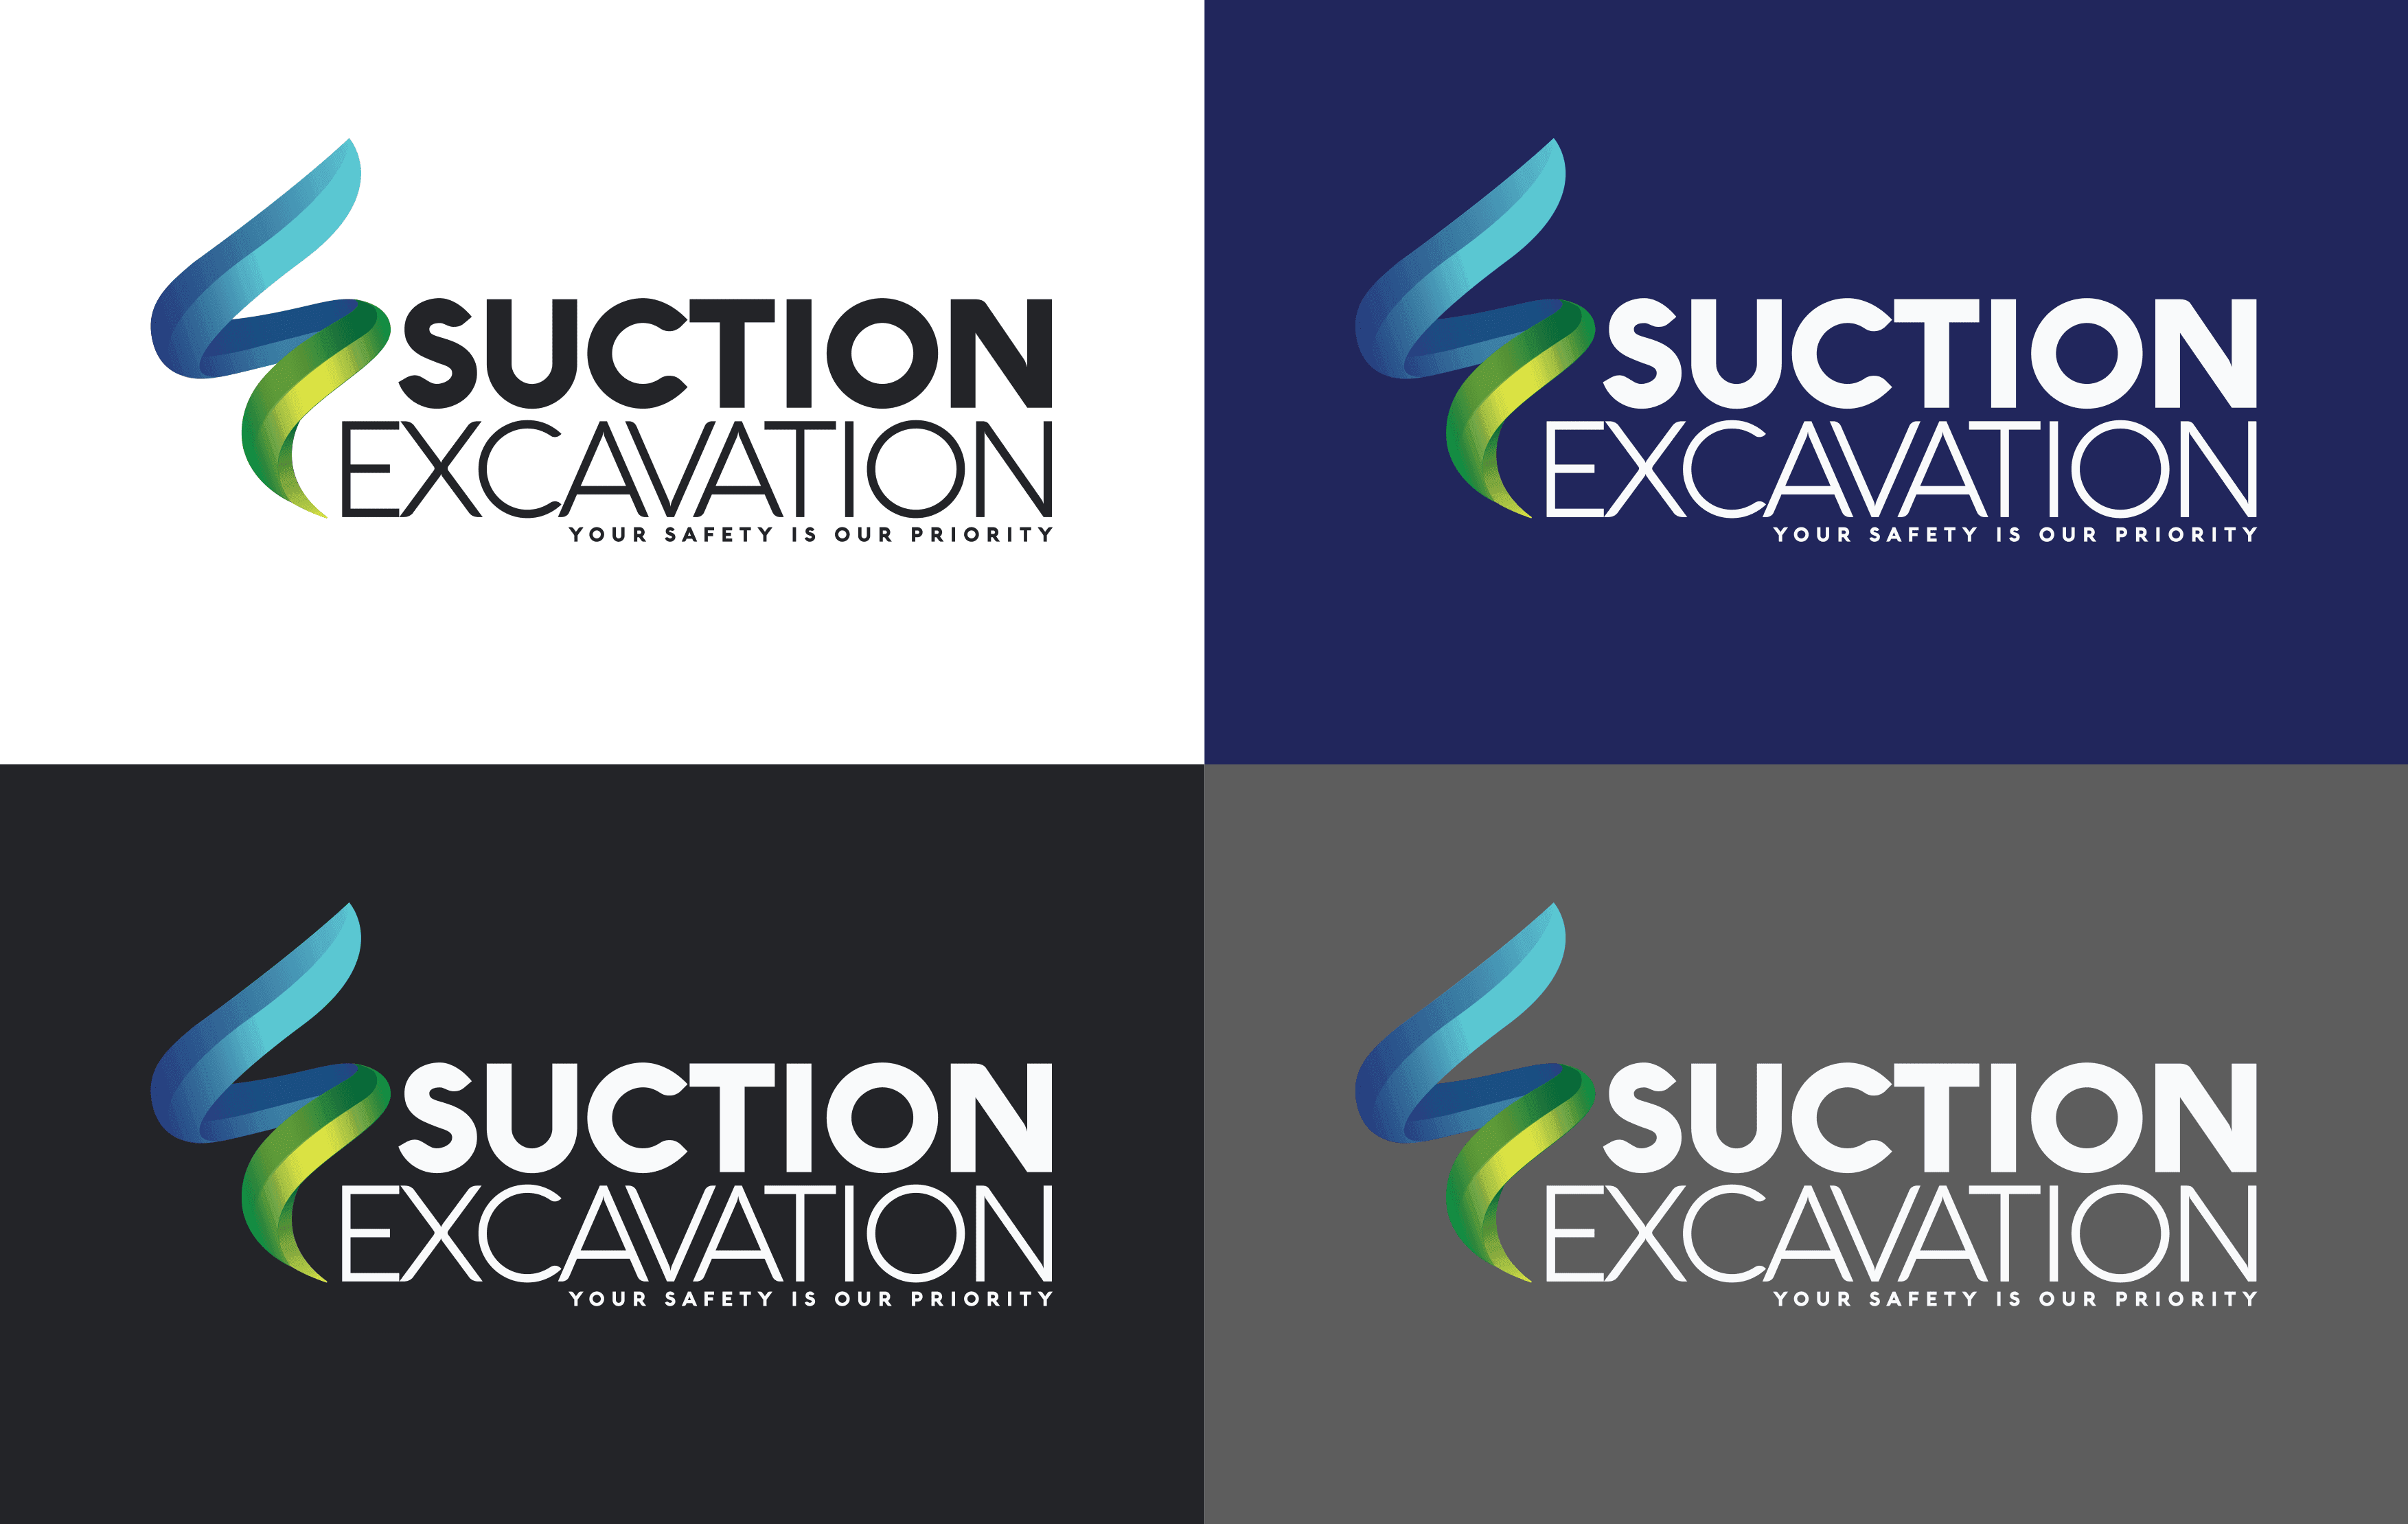 Suction Excavation logo 4-way